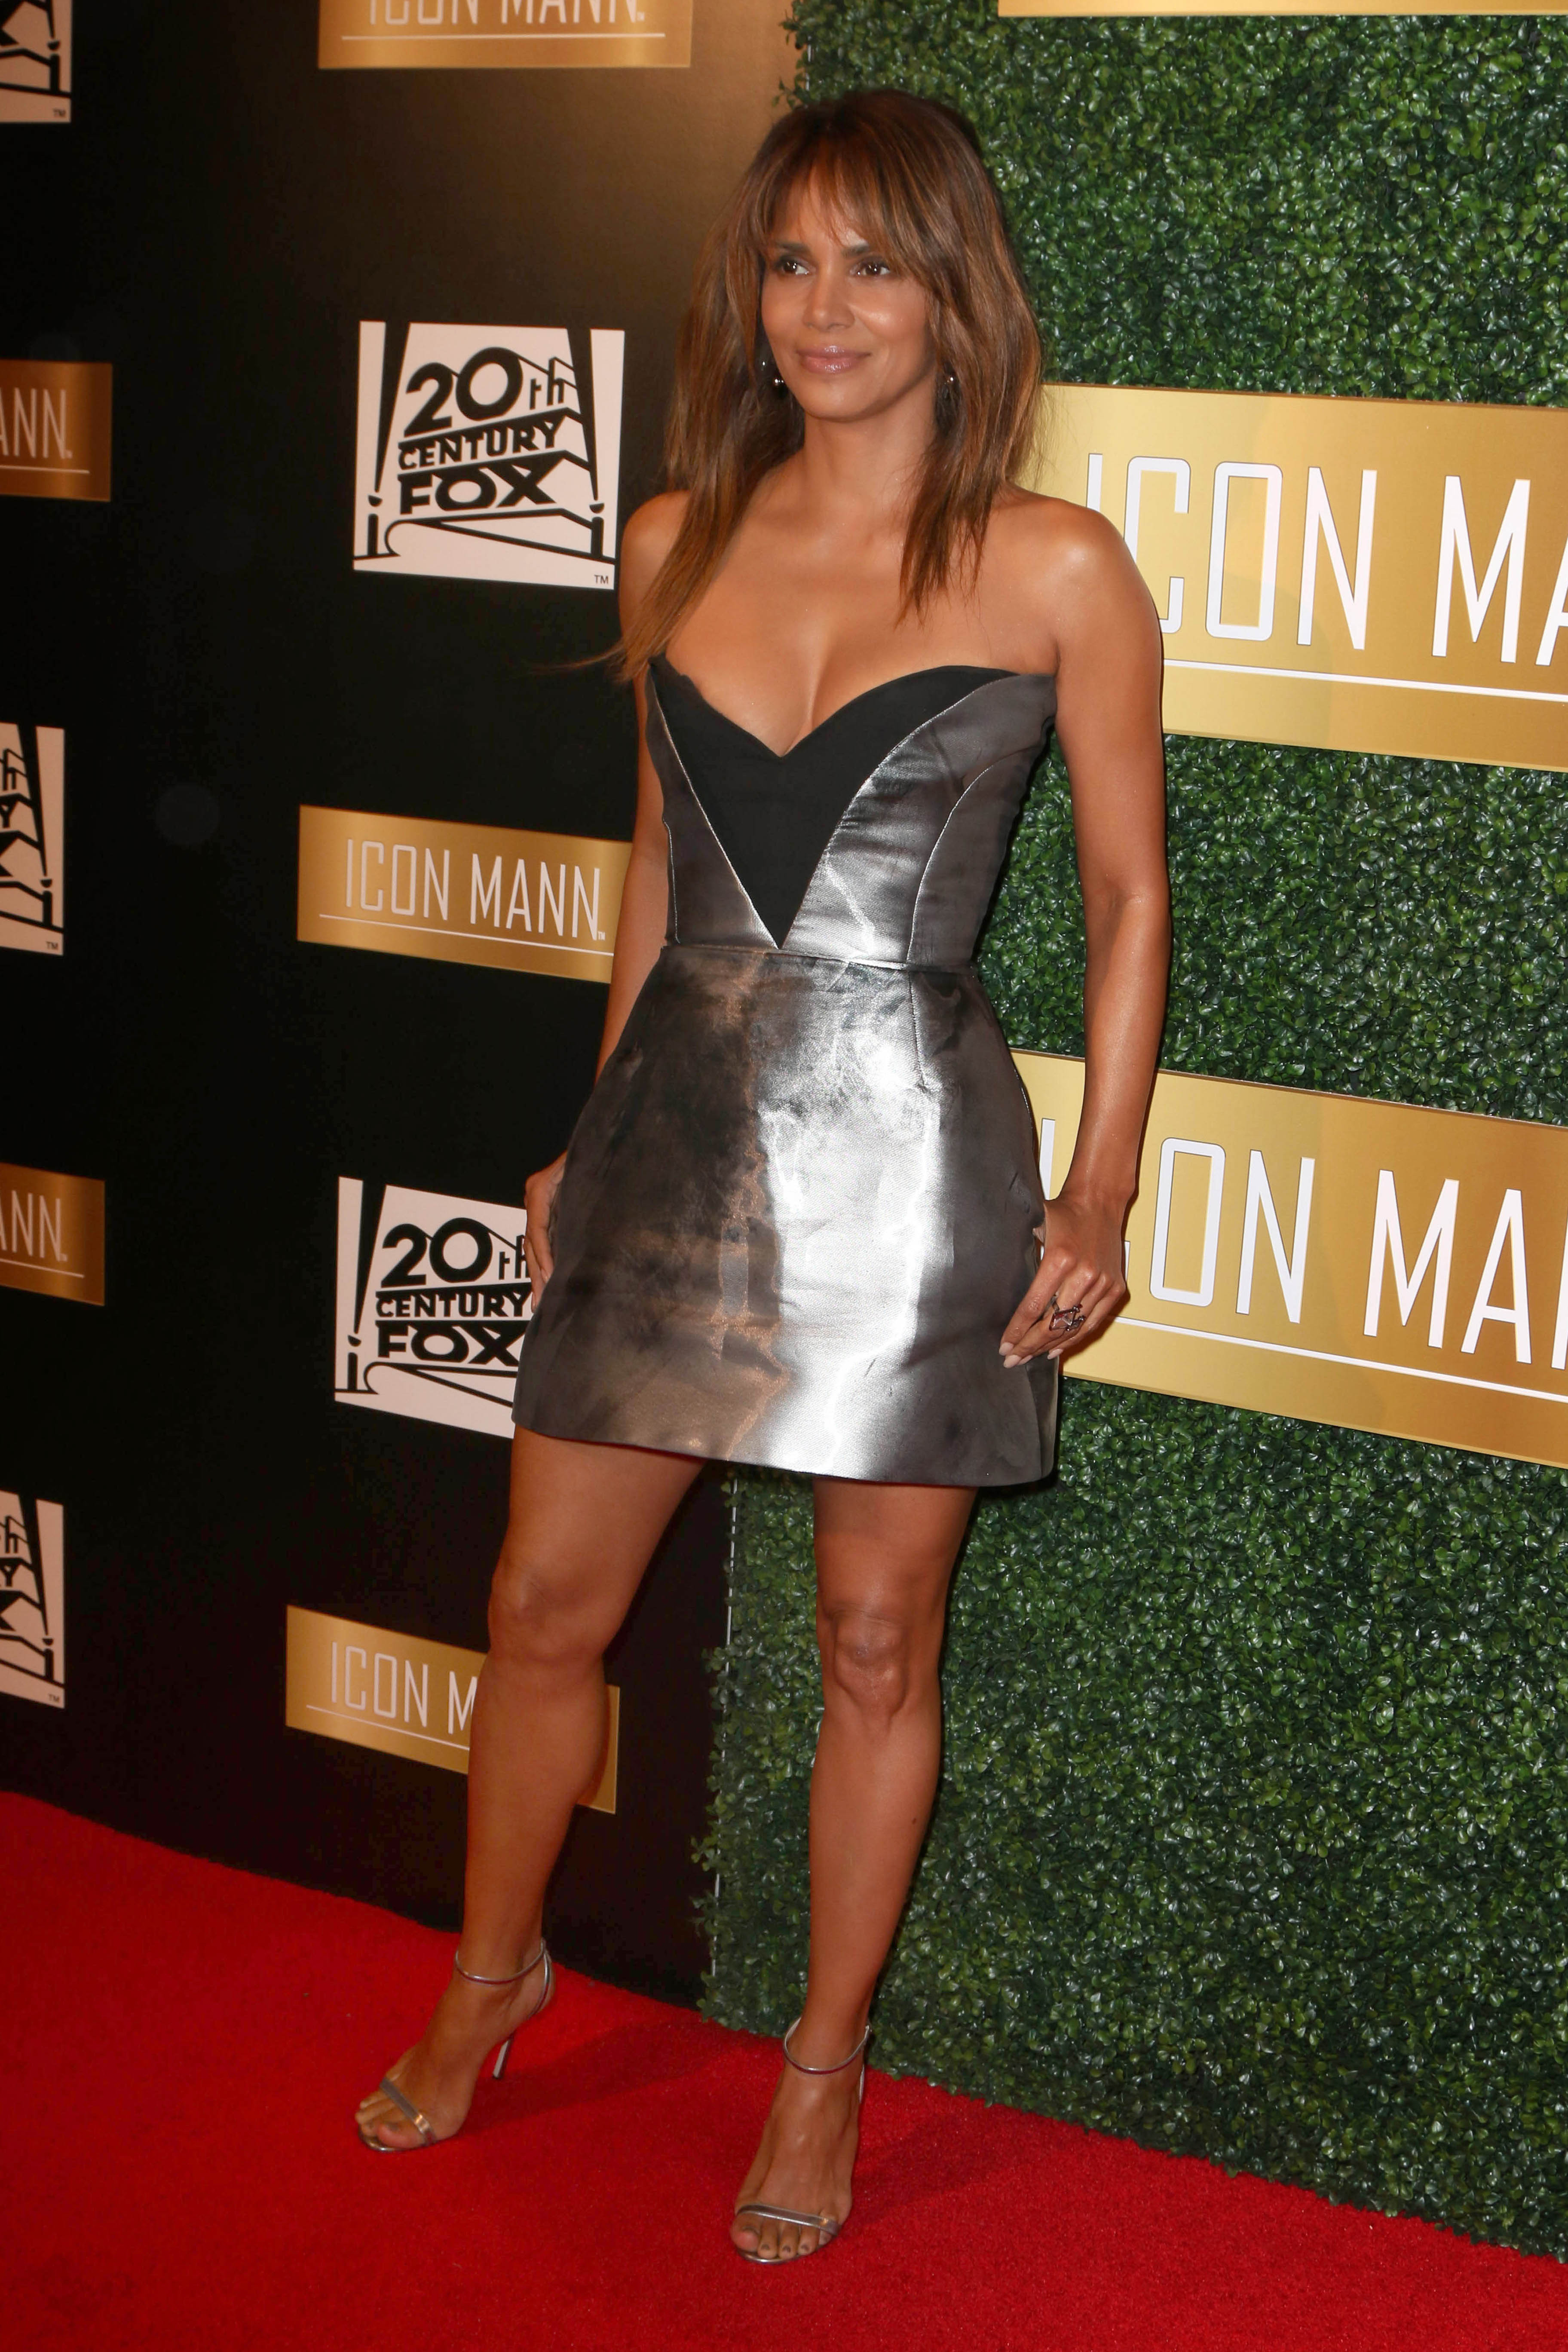 Halle Berry at the 6th Annual ICON MANN Pre-Oscar Dinner, Beverly Wilshire hotel <P> Pictured: Halle Berry <B>Ref: SPL1665128  280218  </B><BR/> Picture by: Splash News<BR/> </P><P> <B>Splash News and Pictures</B><BR/> Los Angeles:310-821-2666<BR/> New York:212-619-2666<BR/> London:870-934-2666<BR/> <span id=